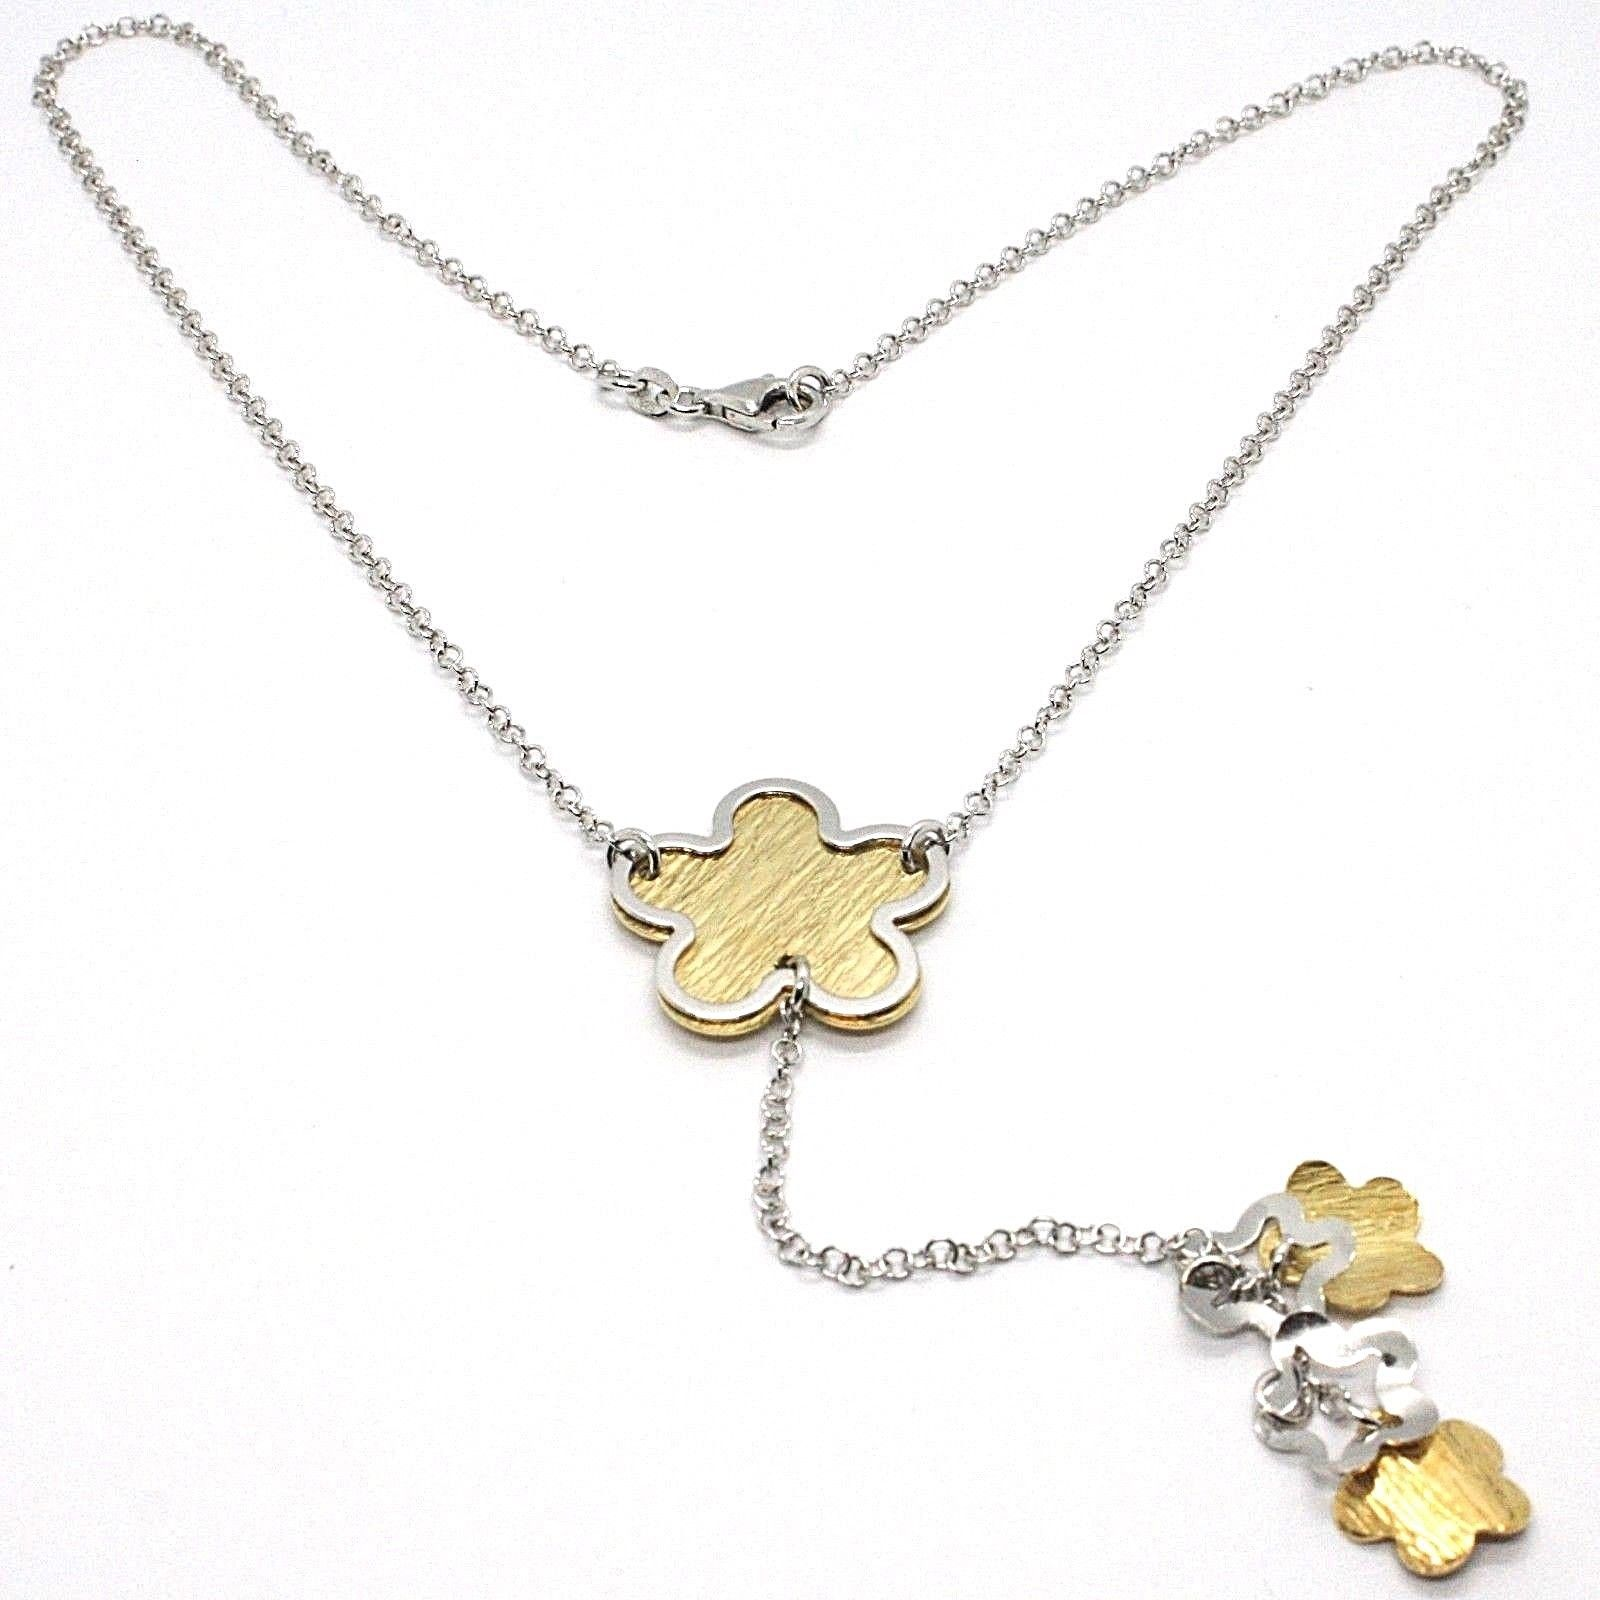 SILVER 925 NECKLACE, CHAIN ROLO', FLOWER, DAISIES HANGING, BICOLOR